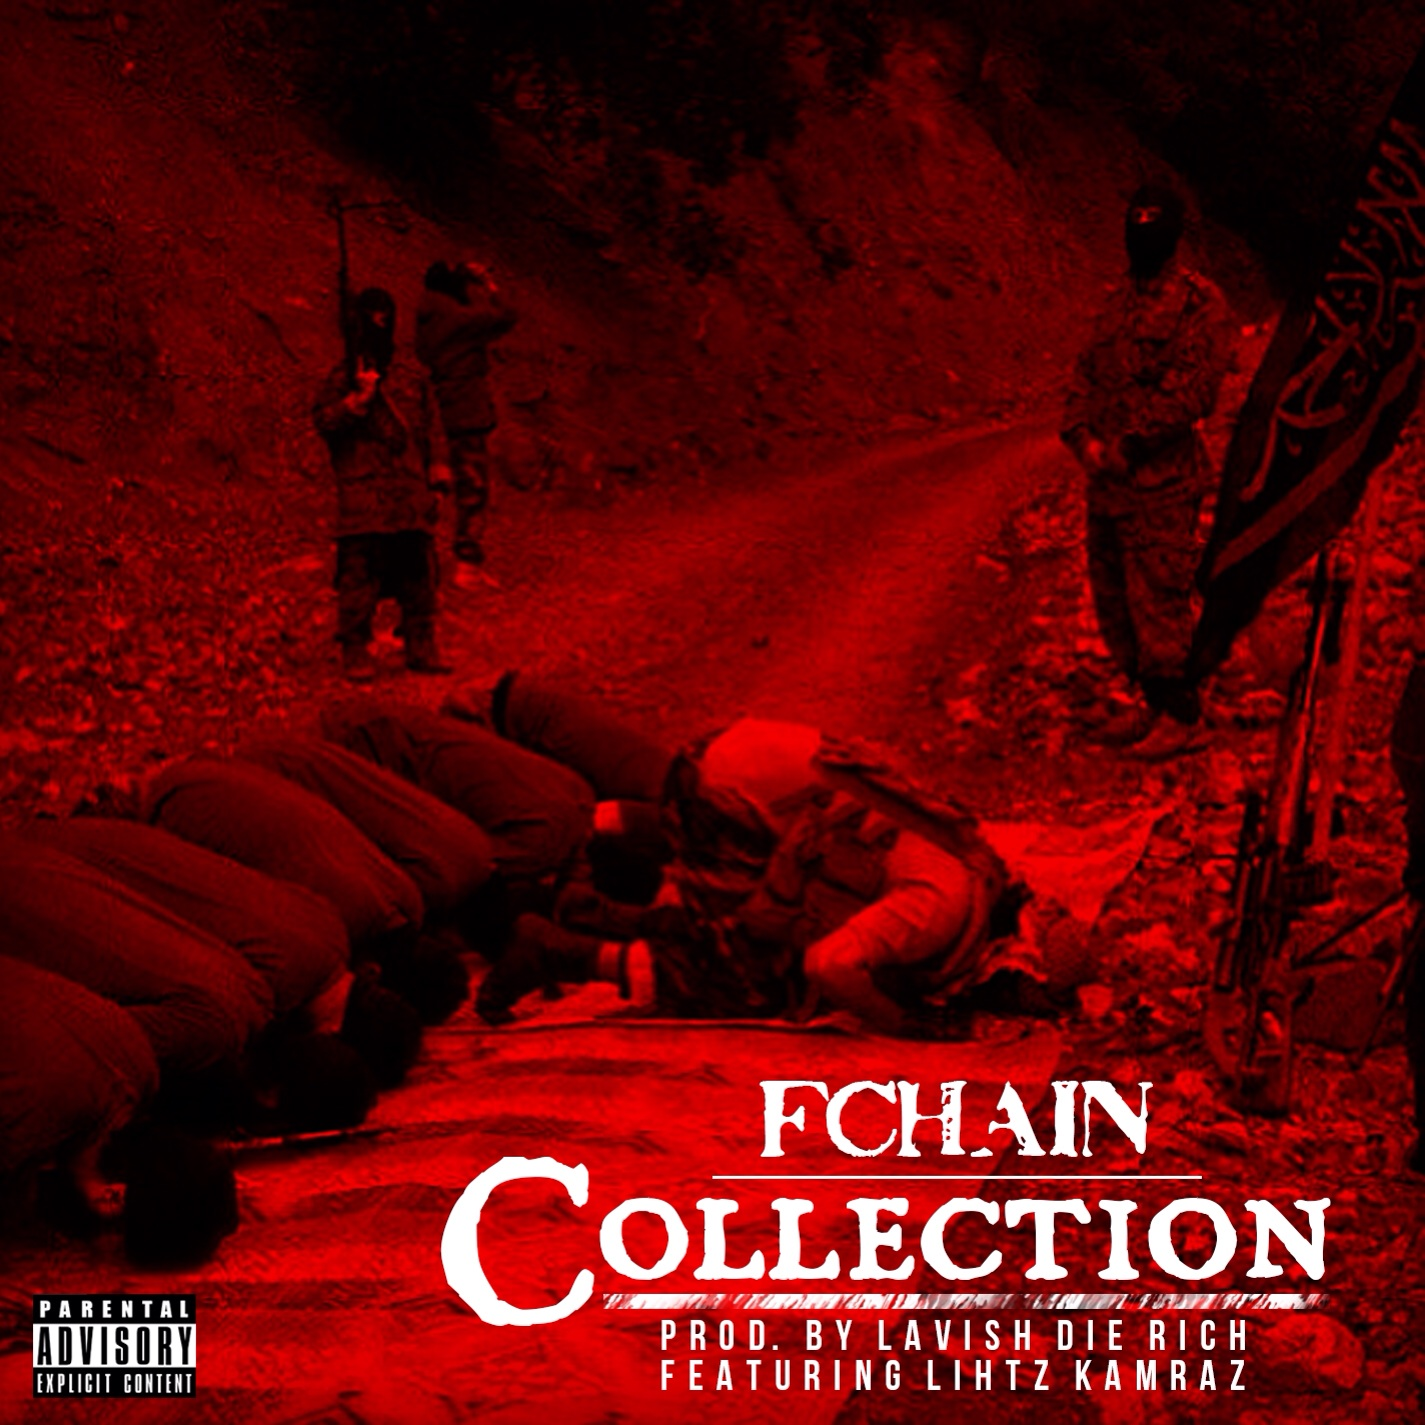 image1 FChain   Collection Ft. Lihtz Kamraz